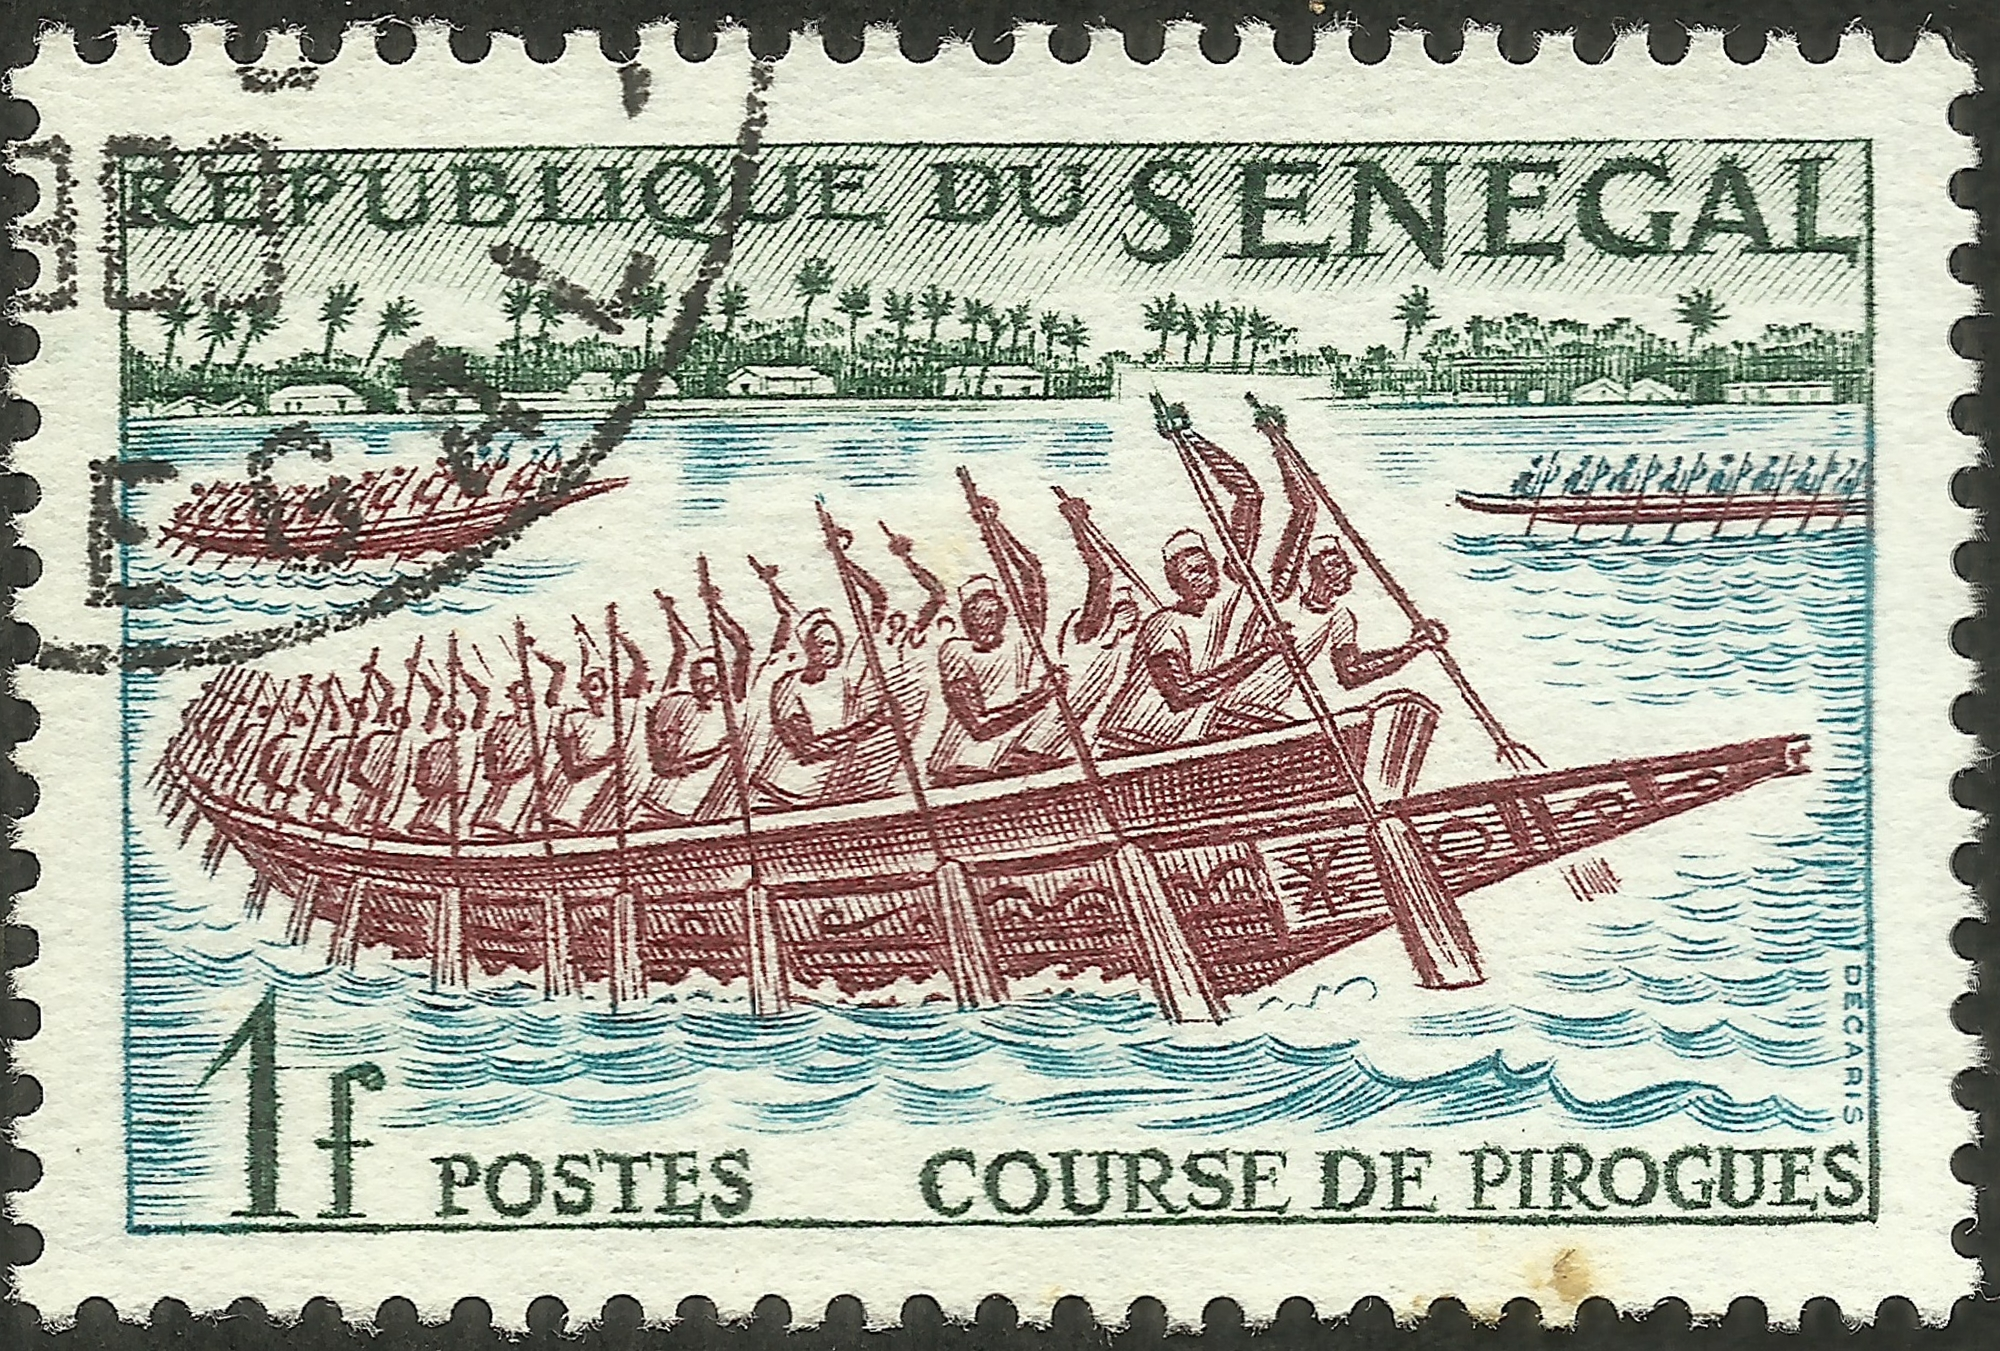 Senegal, Republic of #203 (1961)